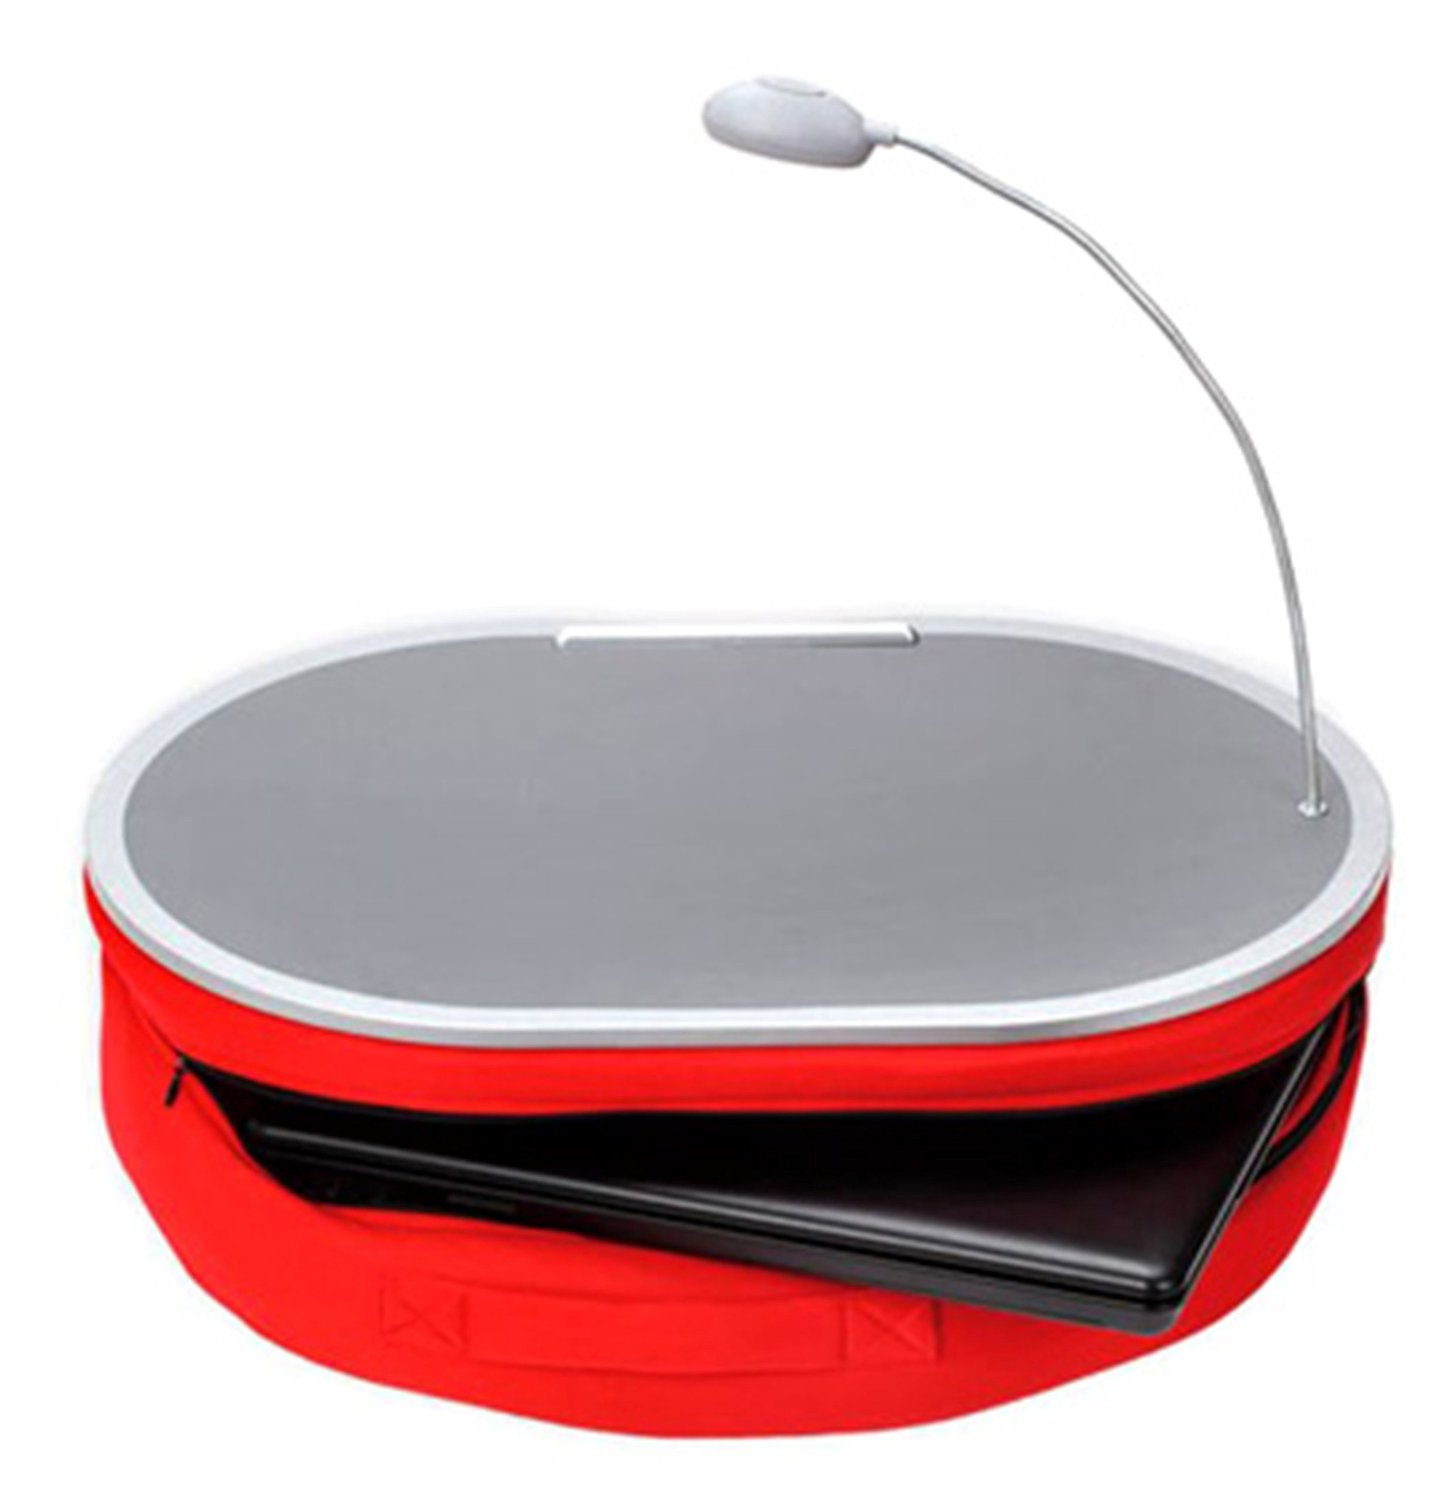 """Portable Lap Desk With LED Lamp, 18"""" x 15"""" - Handy Zippered Storage For Laptop Computer - Adjustable LED Work Light - Light Weight Travel Workstation With Microbead Cushion - Laptop Lapdesk, Black"""